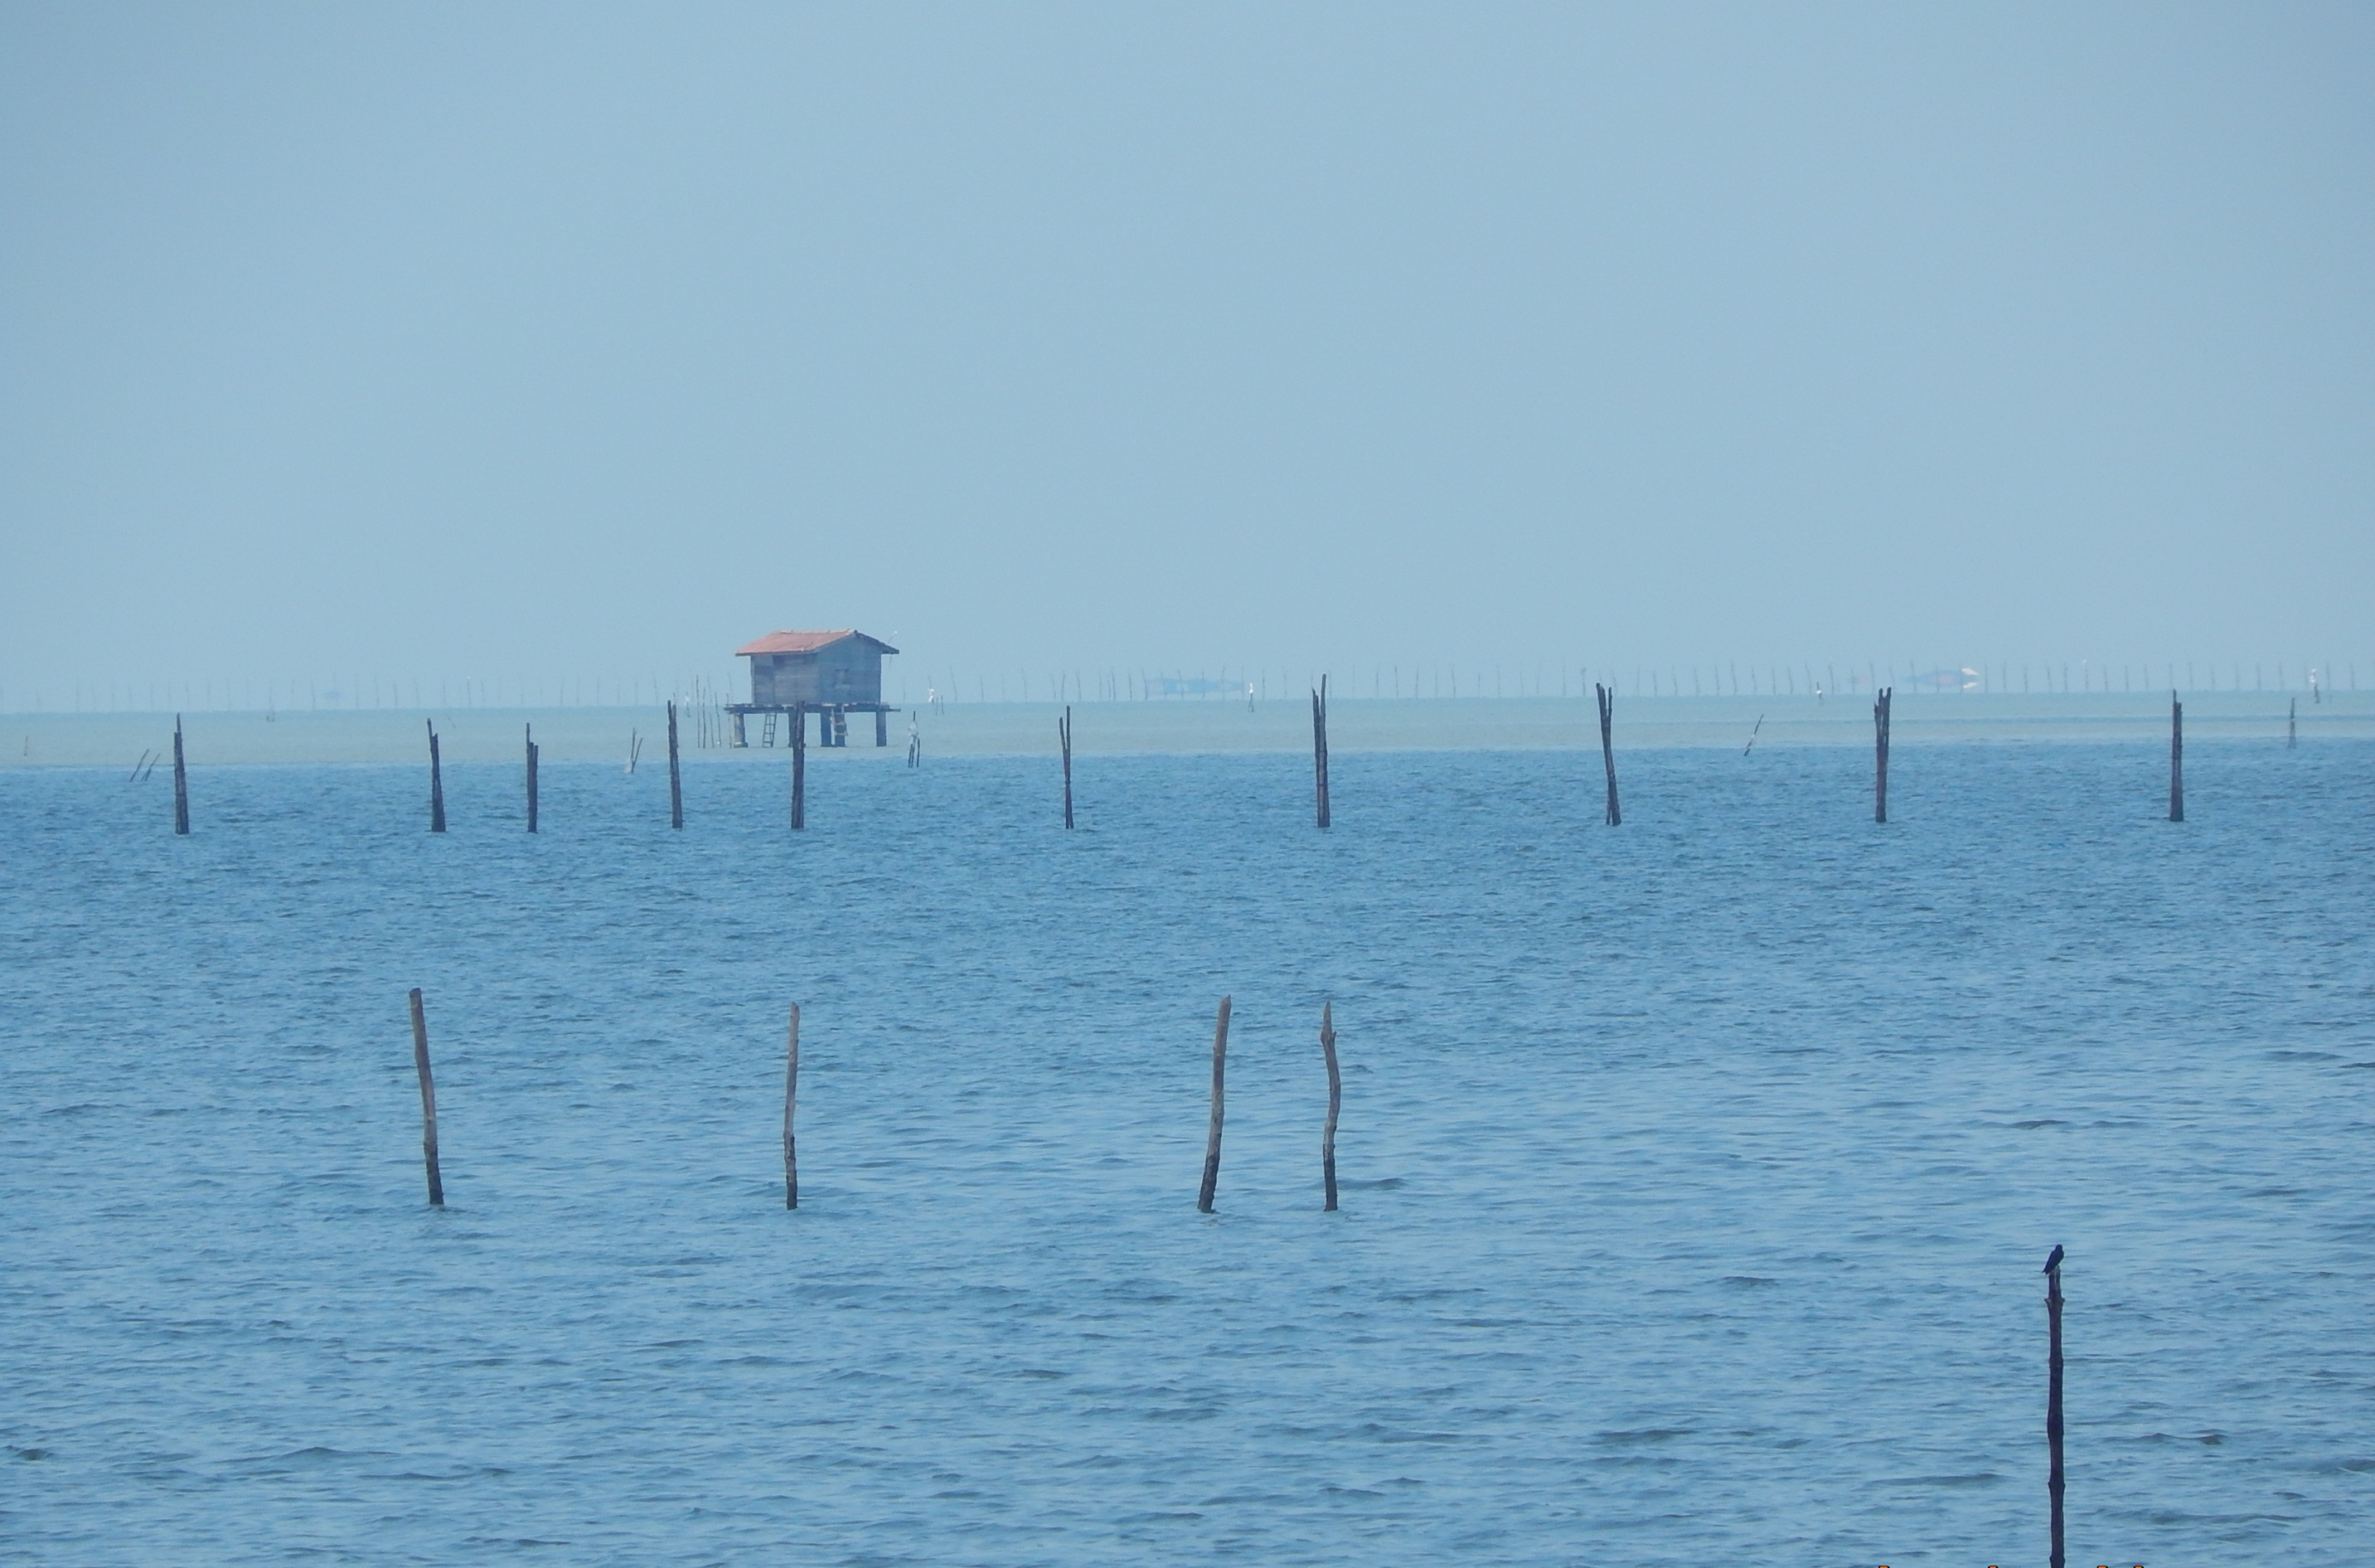 Cockle culture, stakes in the estuary and the sea in Kuala Sepetang